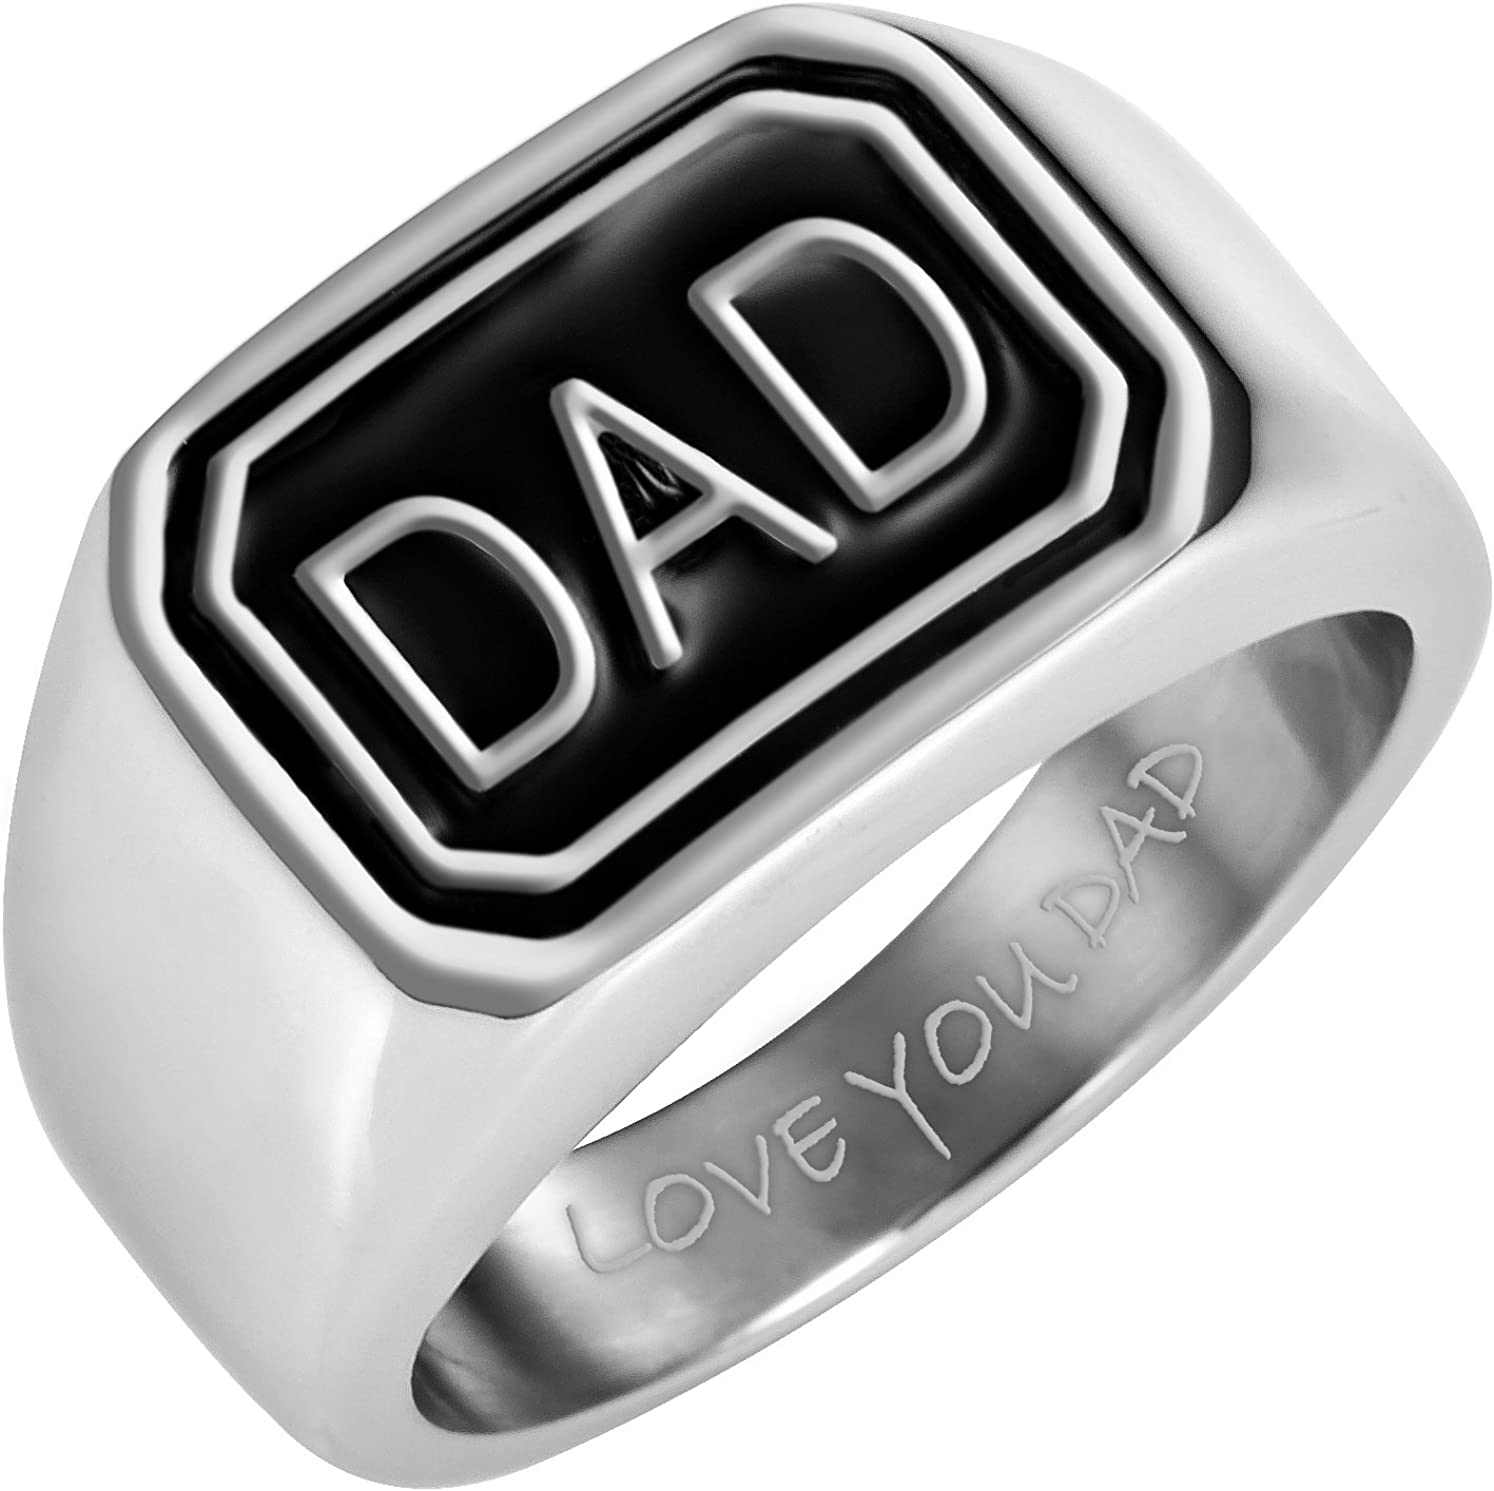 Willis Judd Mens DAD Stainless Steel Ring Engraved Love You Dad in Gift Pouch Black